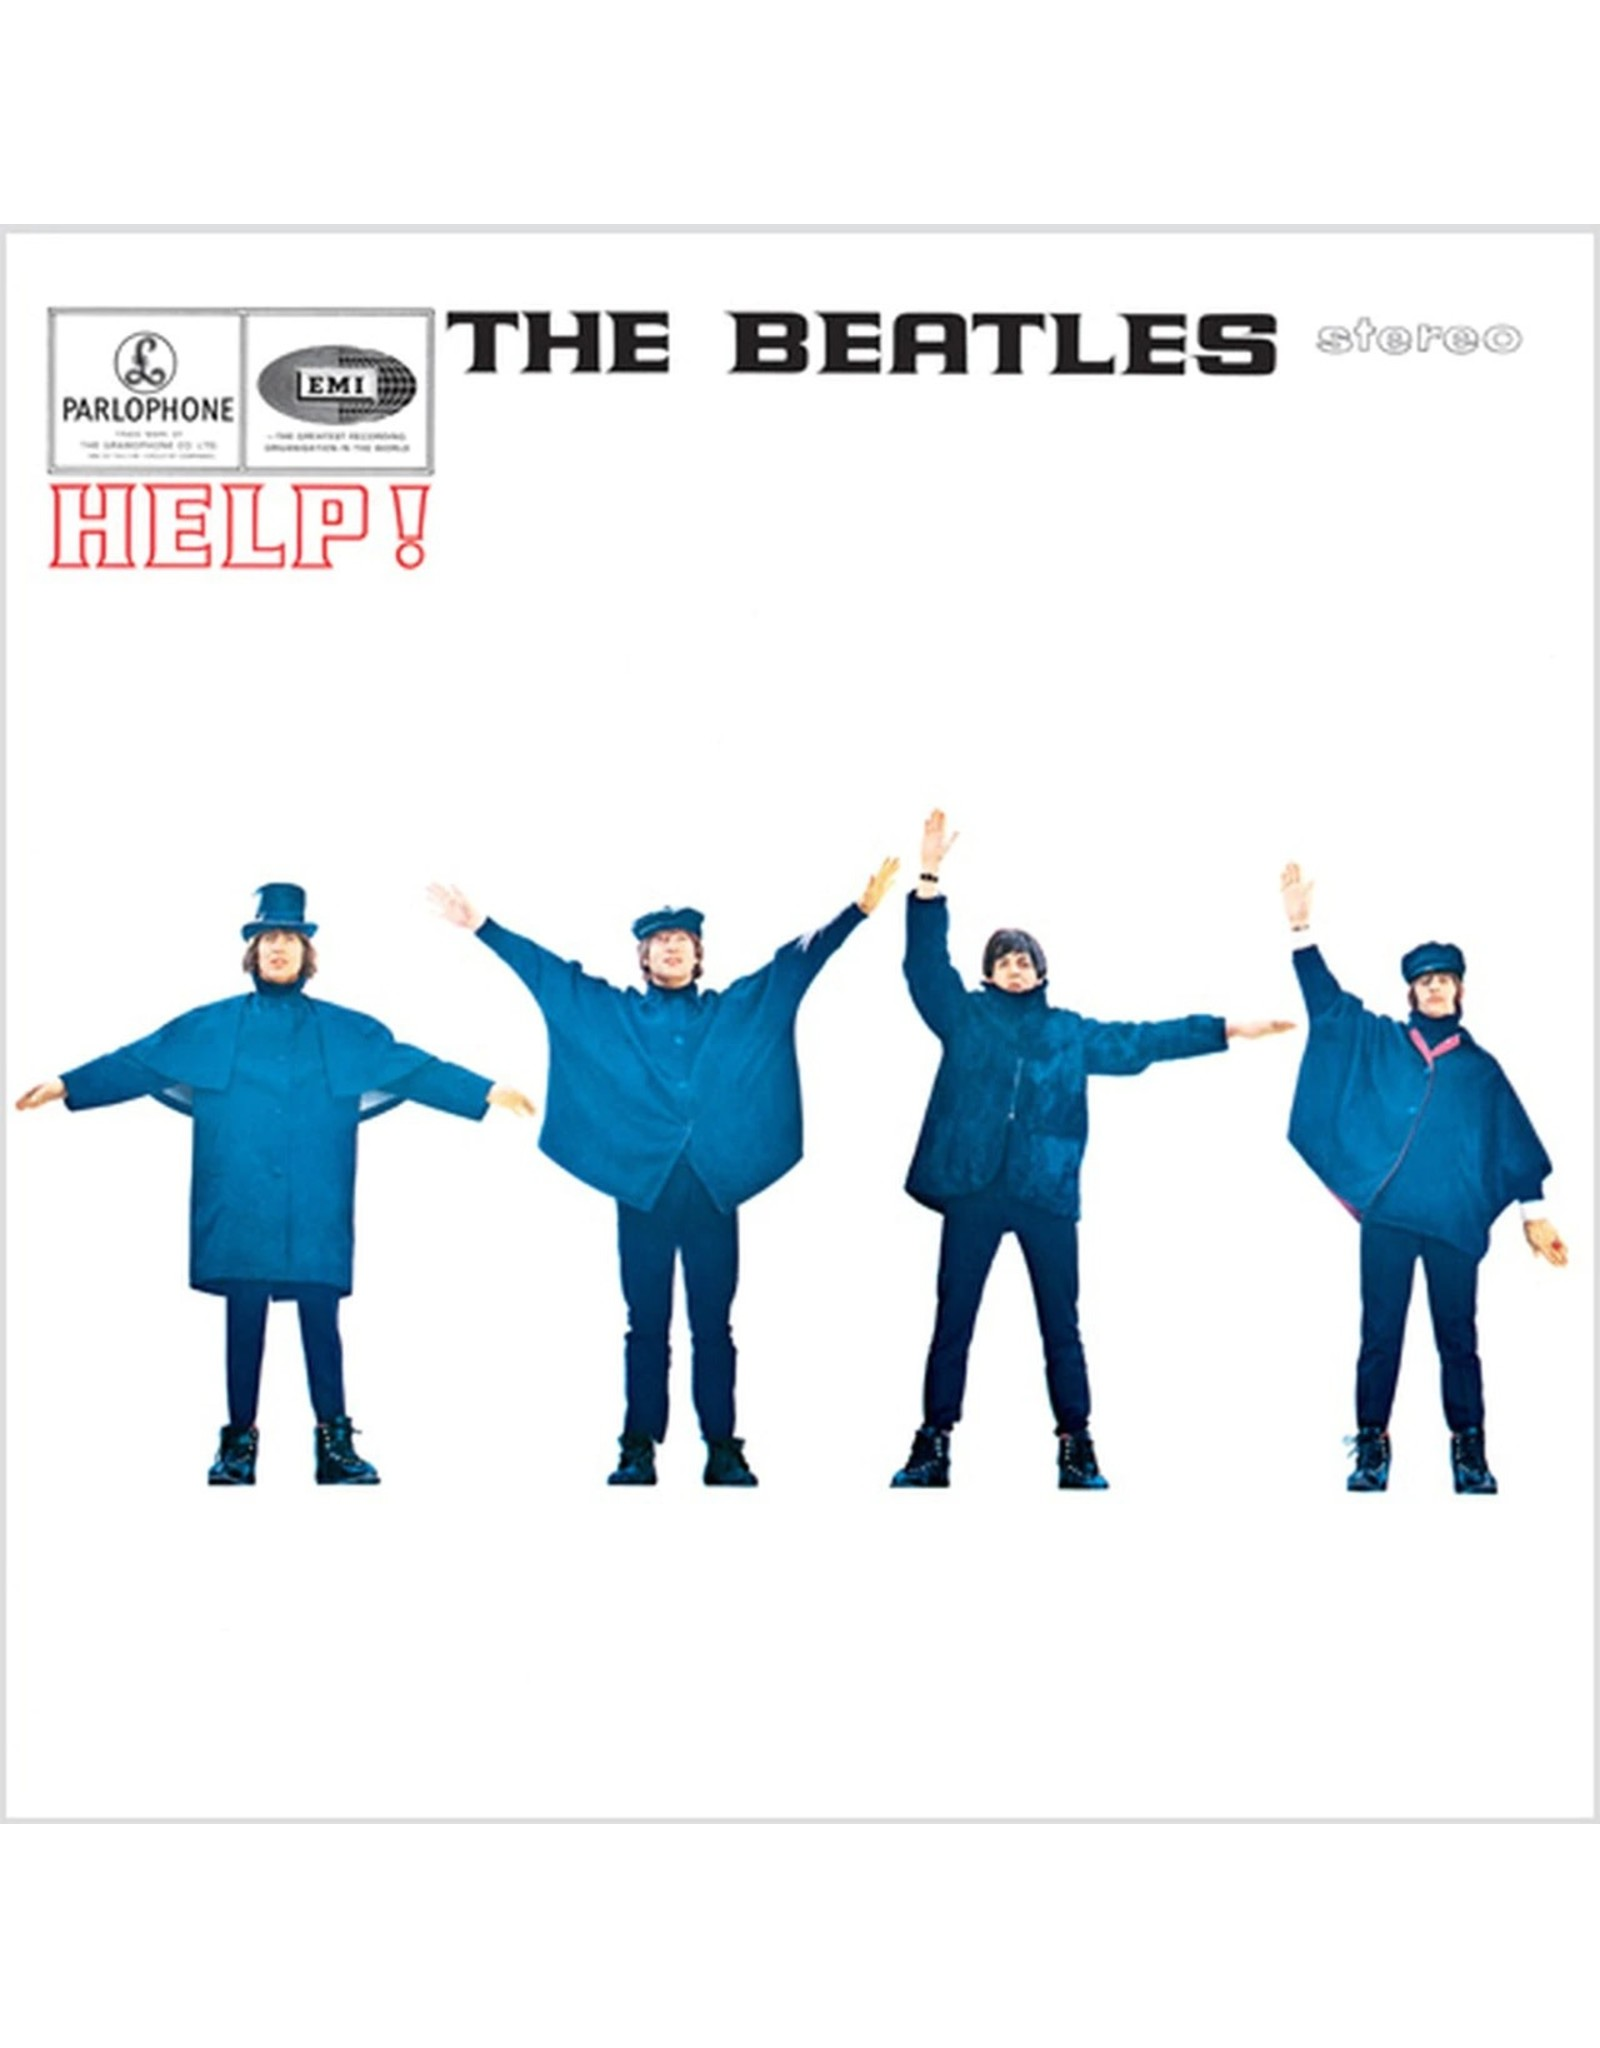 Beatles - Help (2009 Stereo Mix)